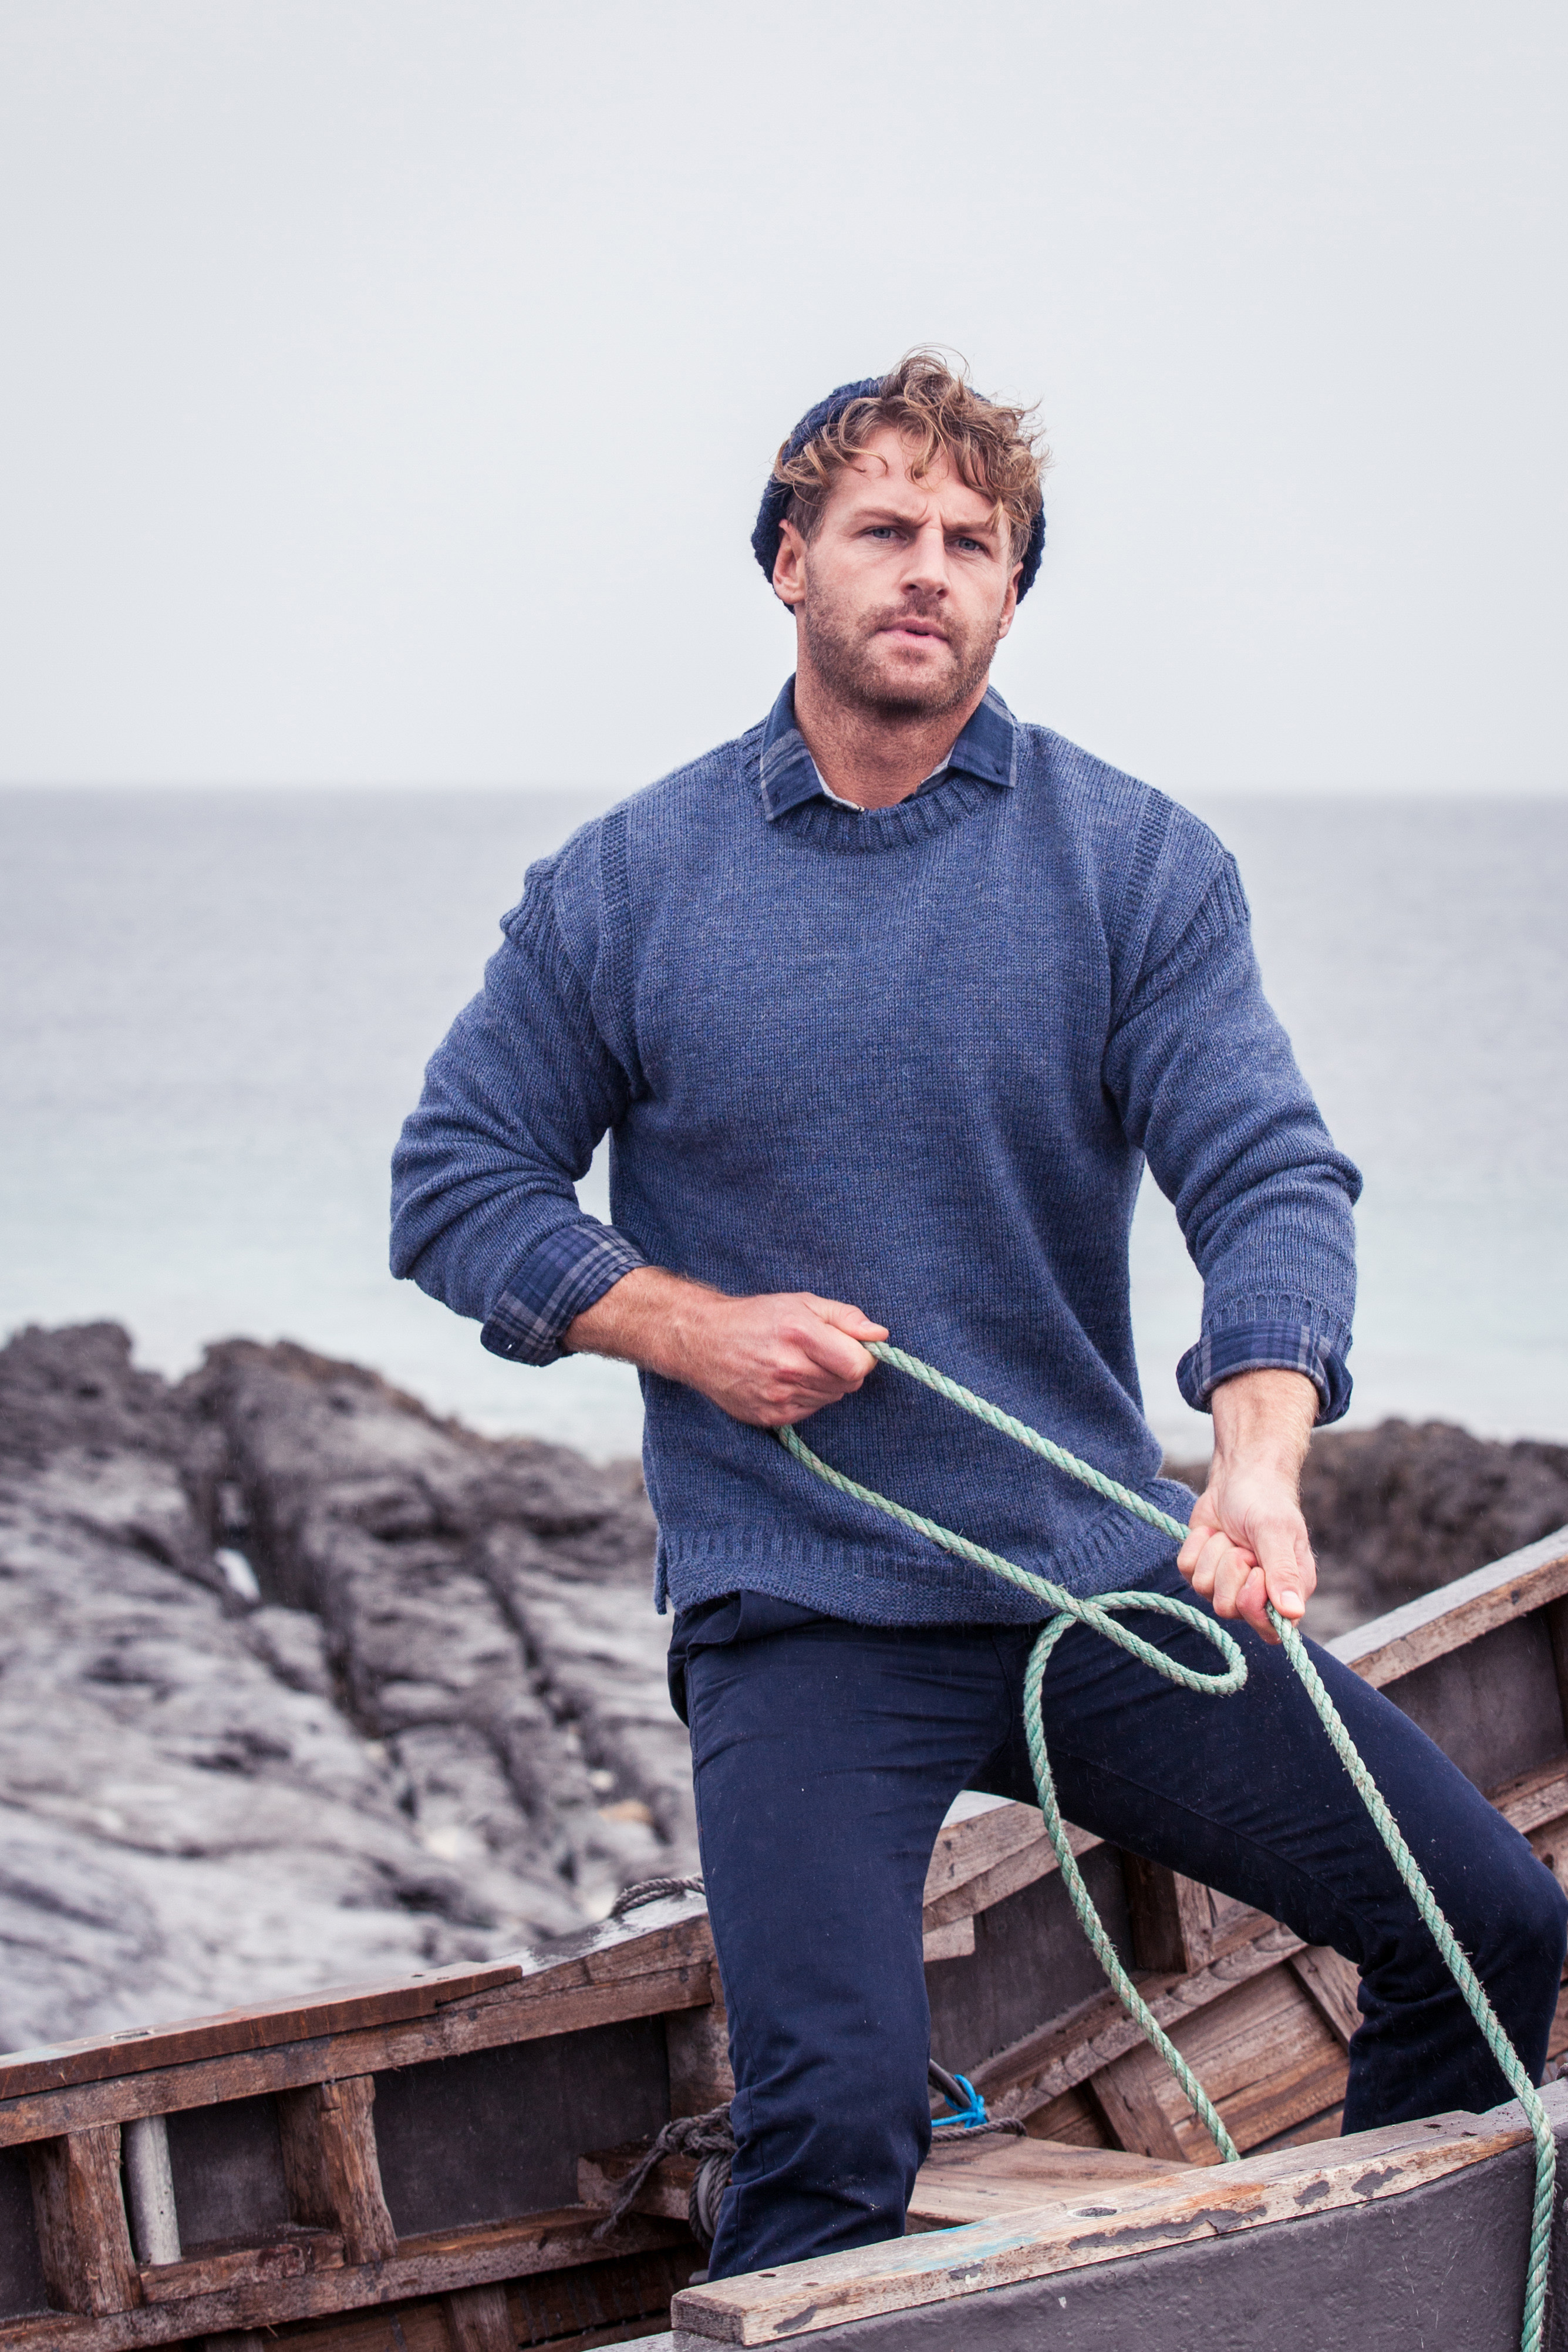 Irish Aran Fisherman Sweaters - steeped in our island history